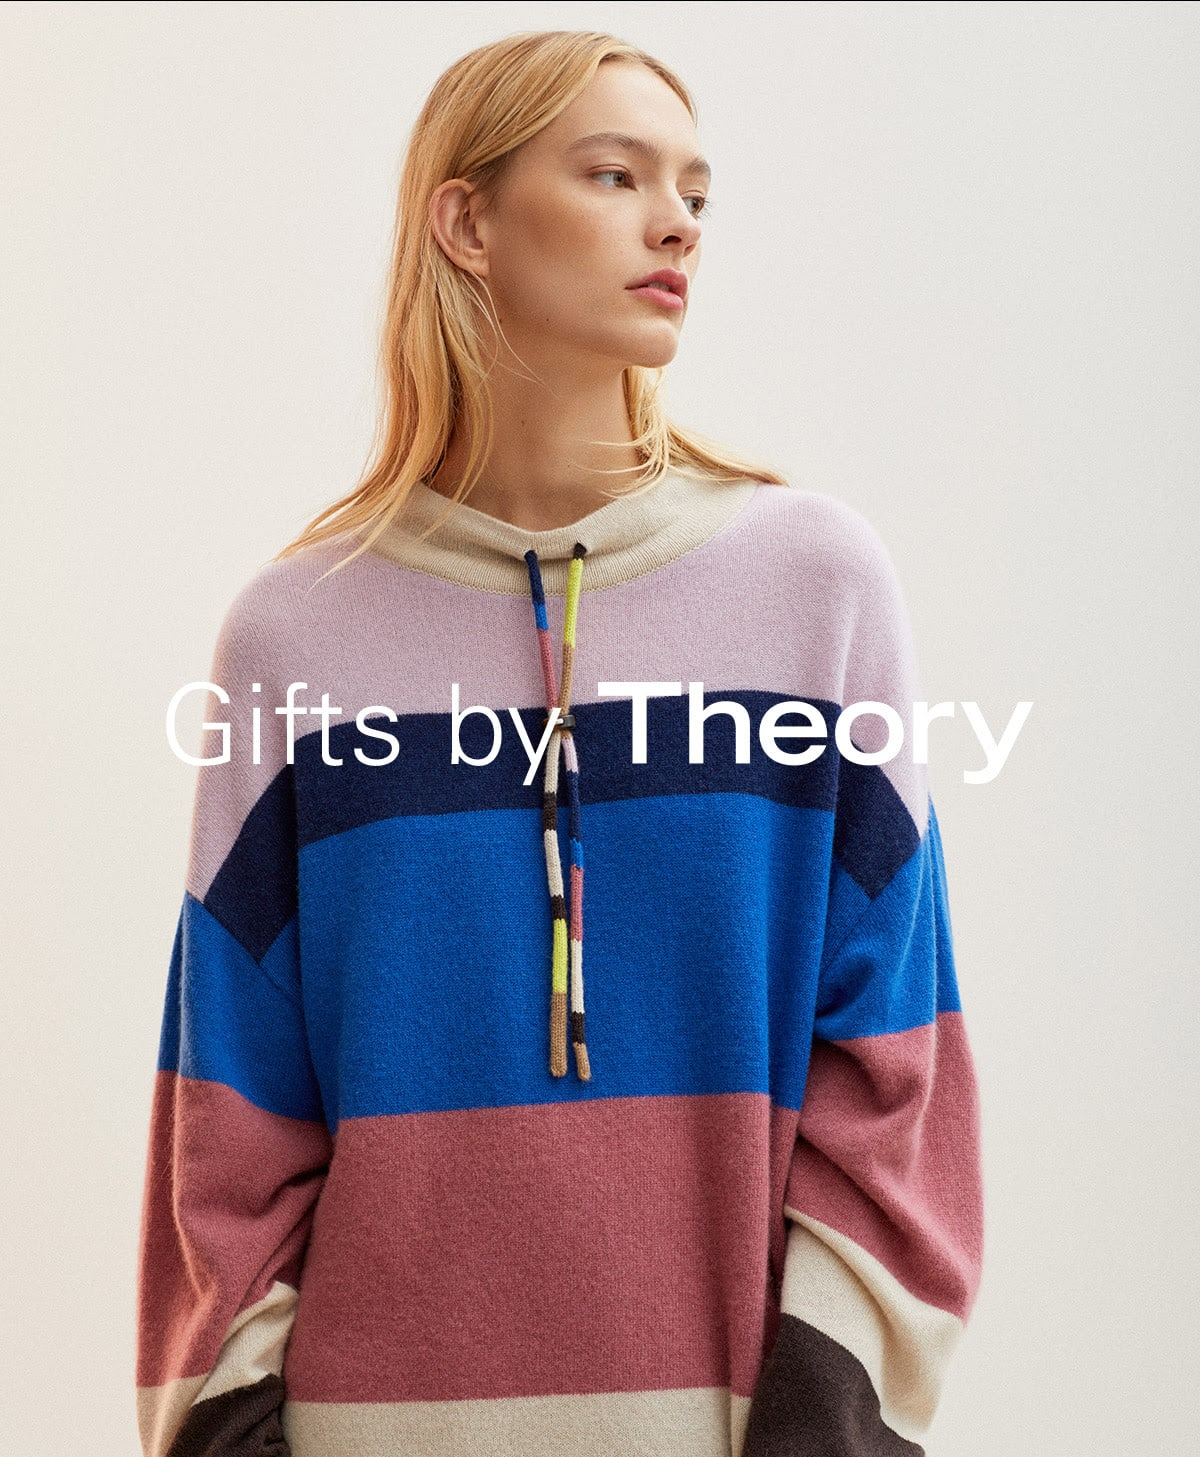 Best Cashmere: Gifts by Theory for Holiday 2018 – NAWO